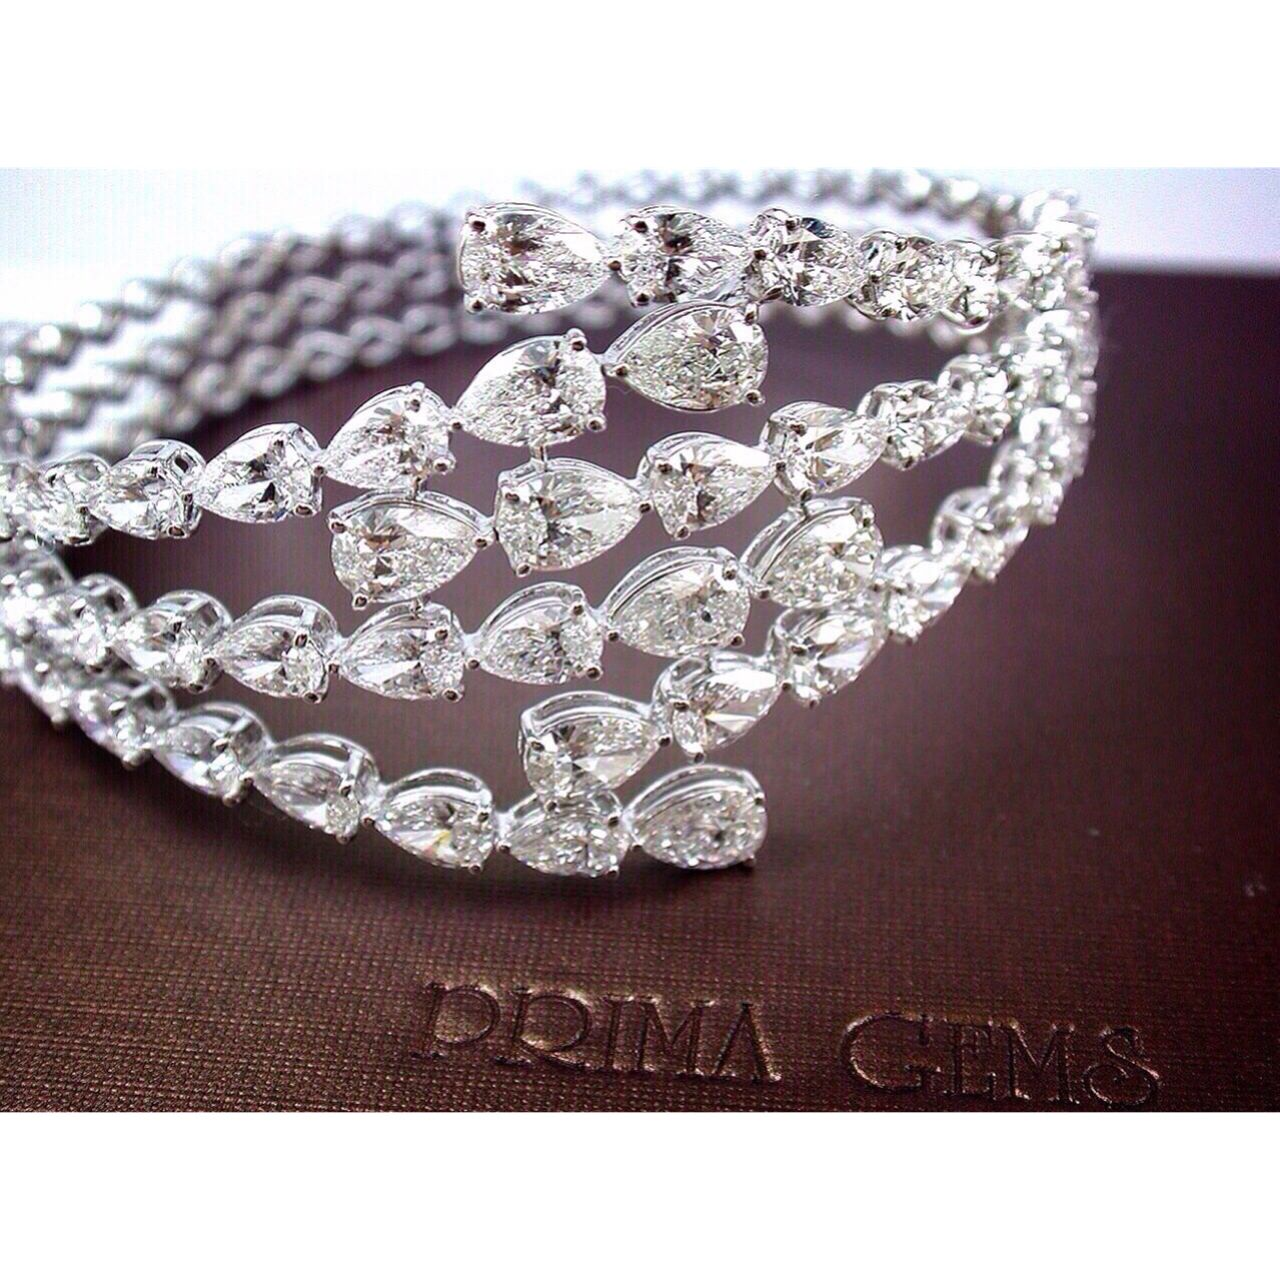 This Gorgeous Pear Shaped Diamond Bangle Is Unique And Sophisticated Primagems Pearshapediamond Ban Diamond Bracelet Design Diamond Bangle Diamond Bracelets